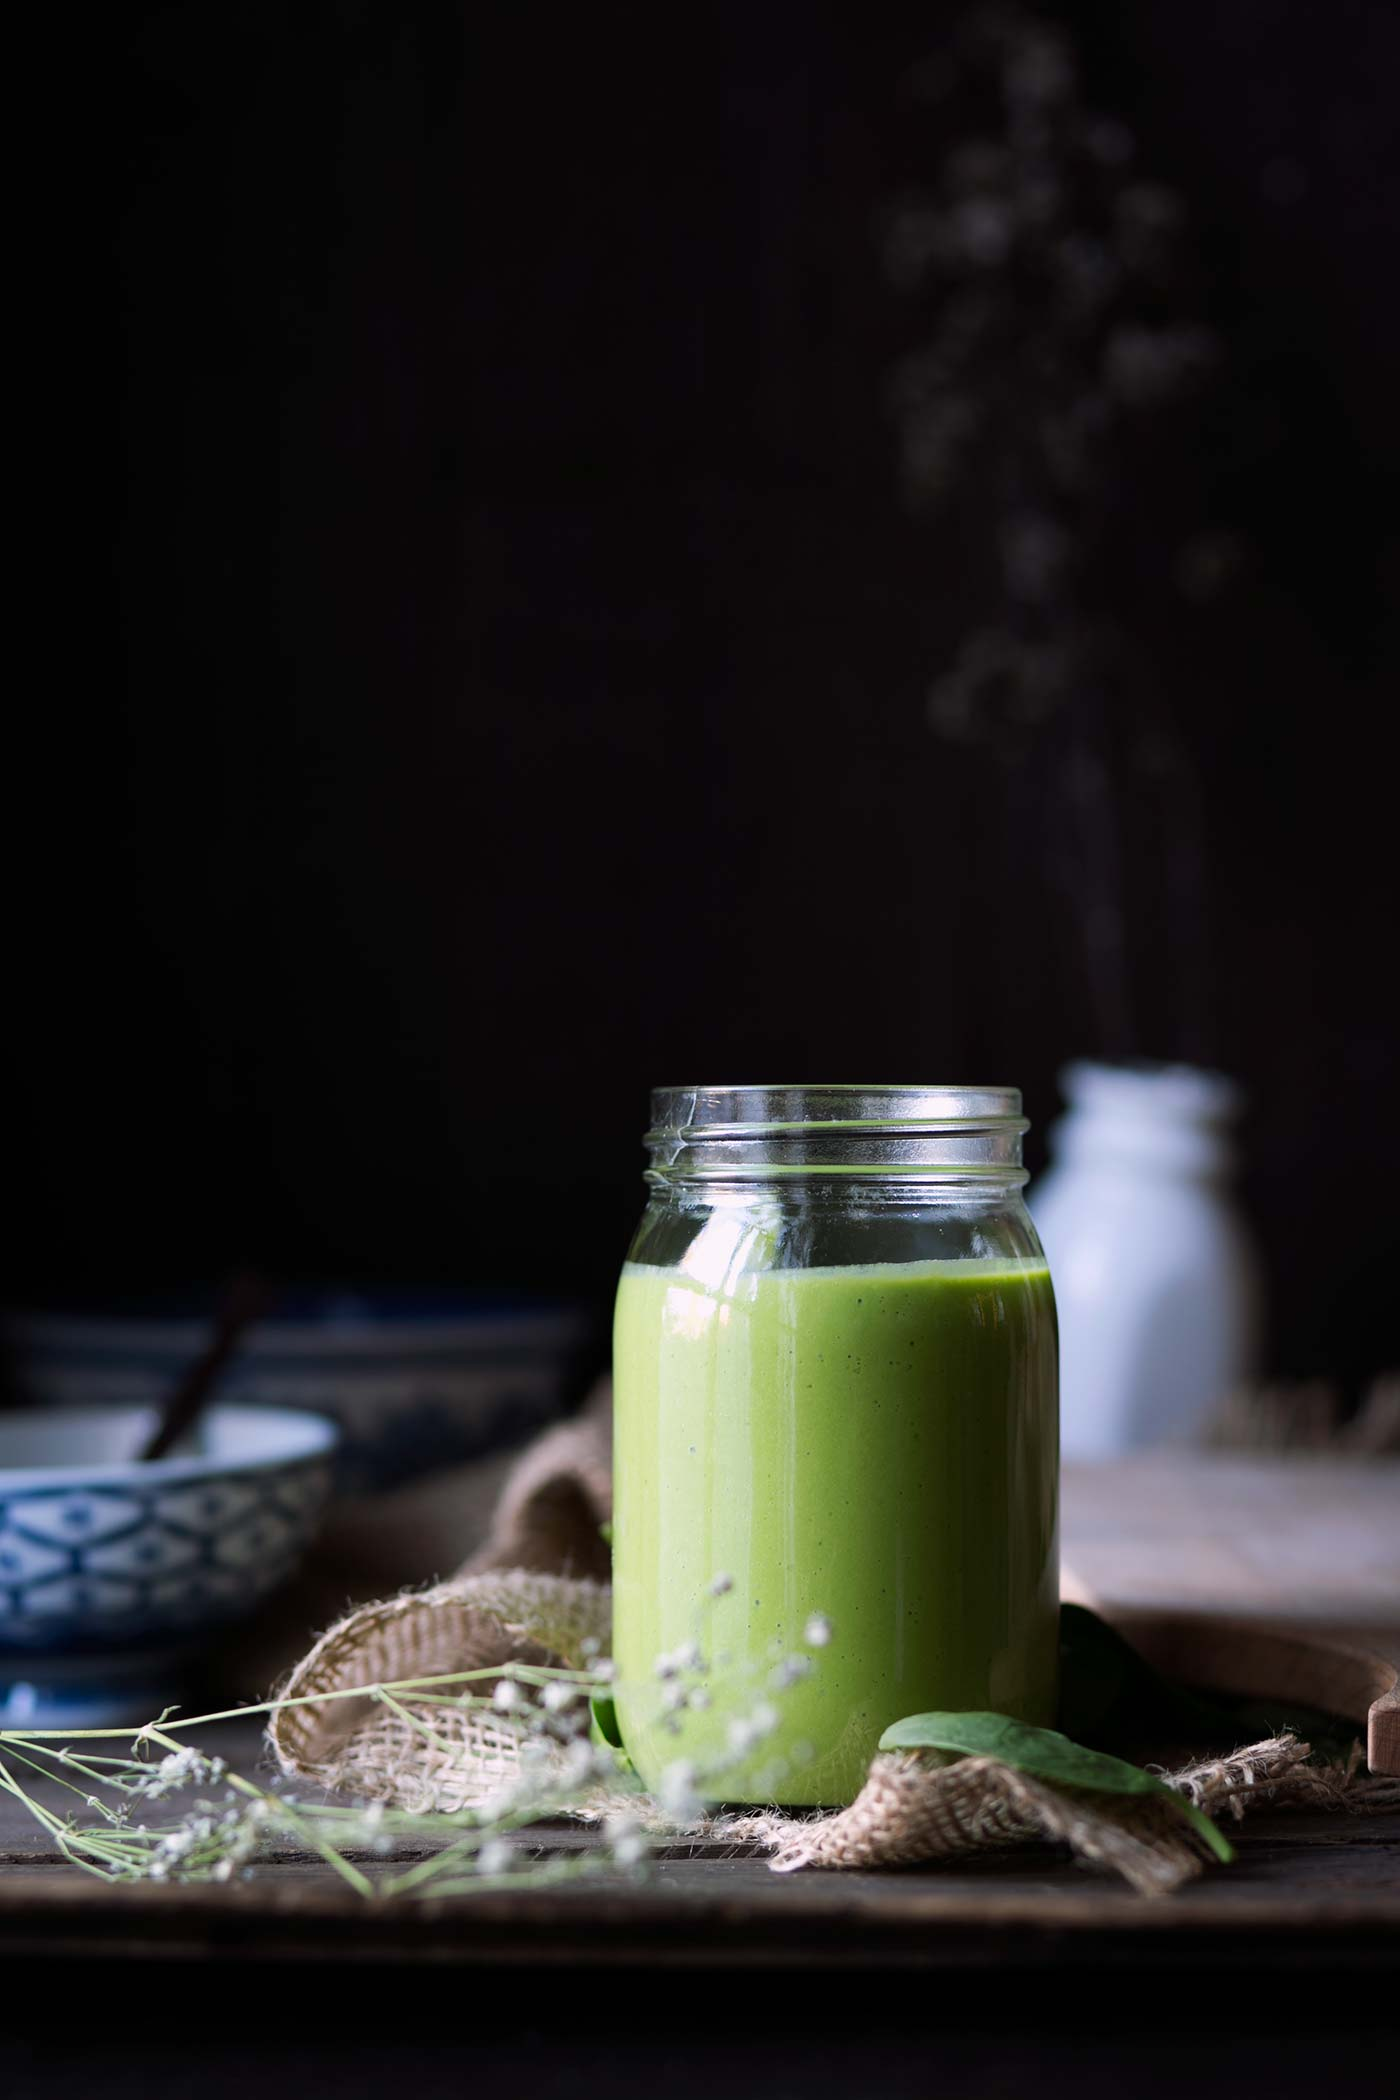 This is the BEST green smoothie. It's sweet, healthy and filling. Ingredients include bananas, yogurt, pineapple, mango and spinach (which you cannot taste)! Get the recipe from SavorySimple.net.